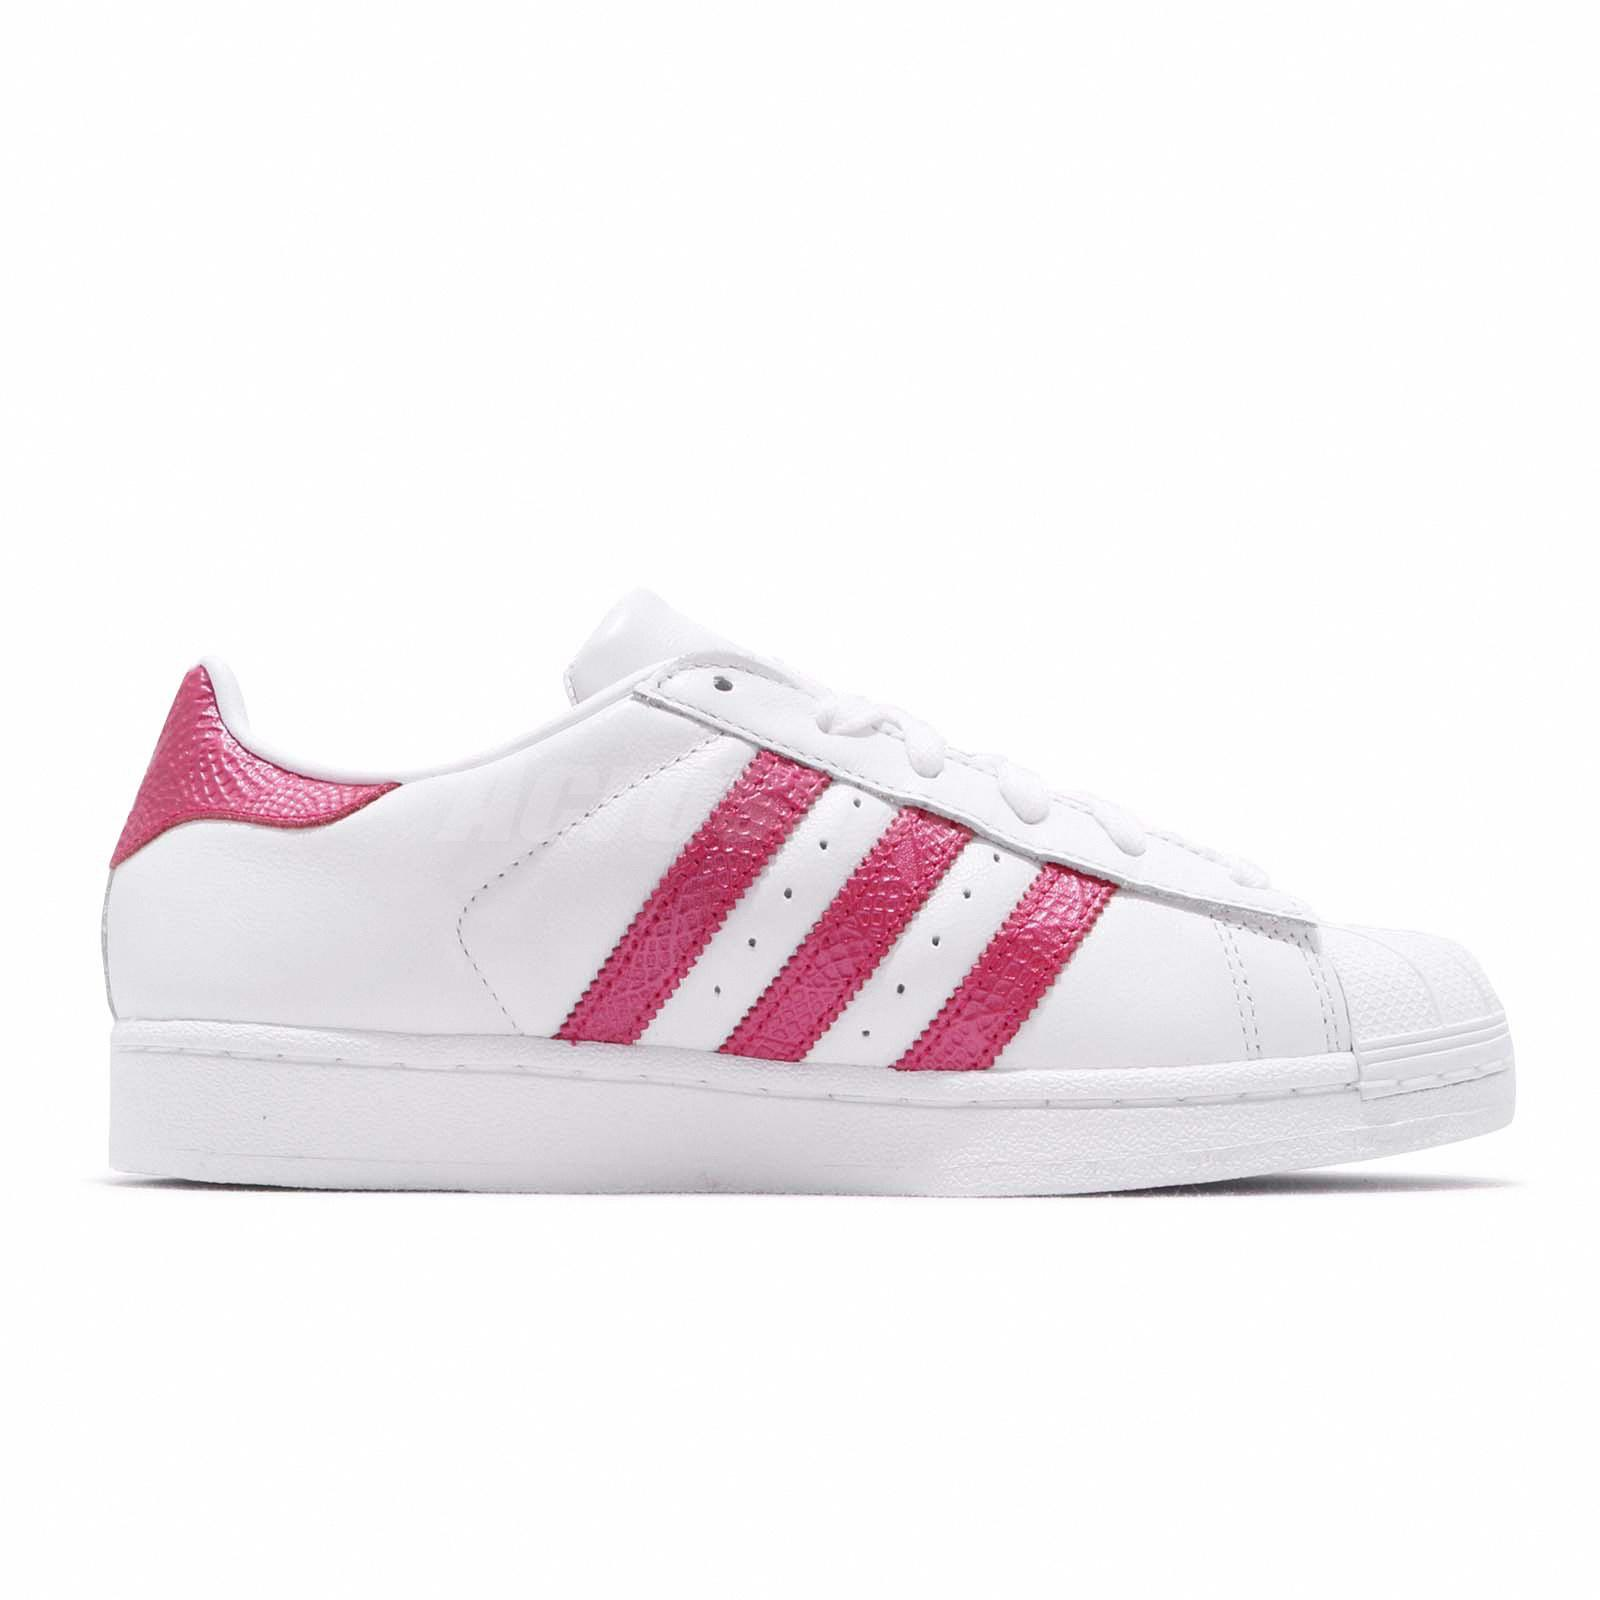 9784840a46e adidas Originals Superstar W White Pink Women Casual Shoes Sneakers ...